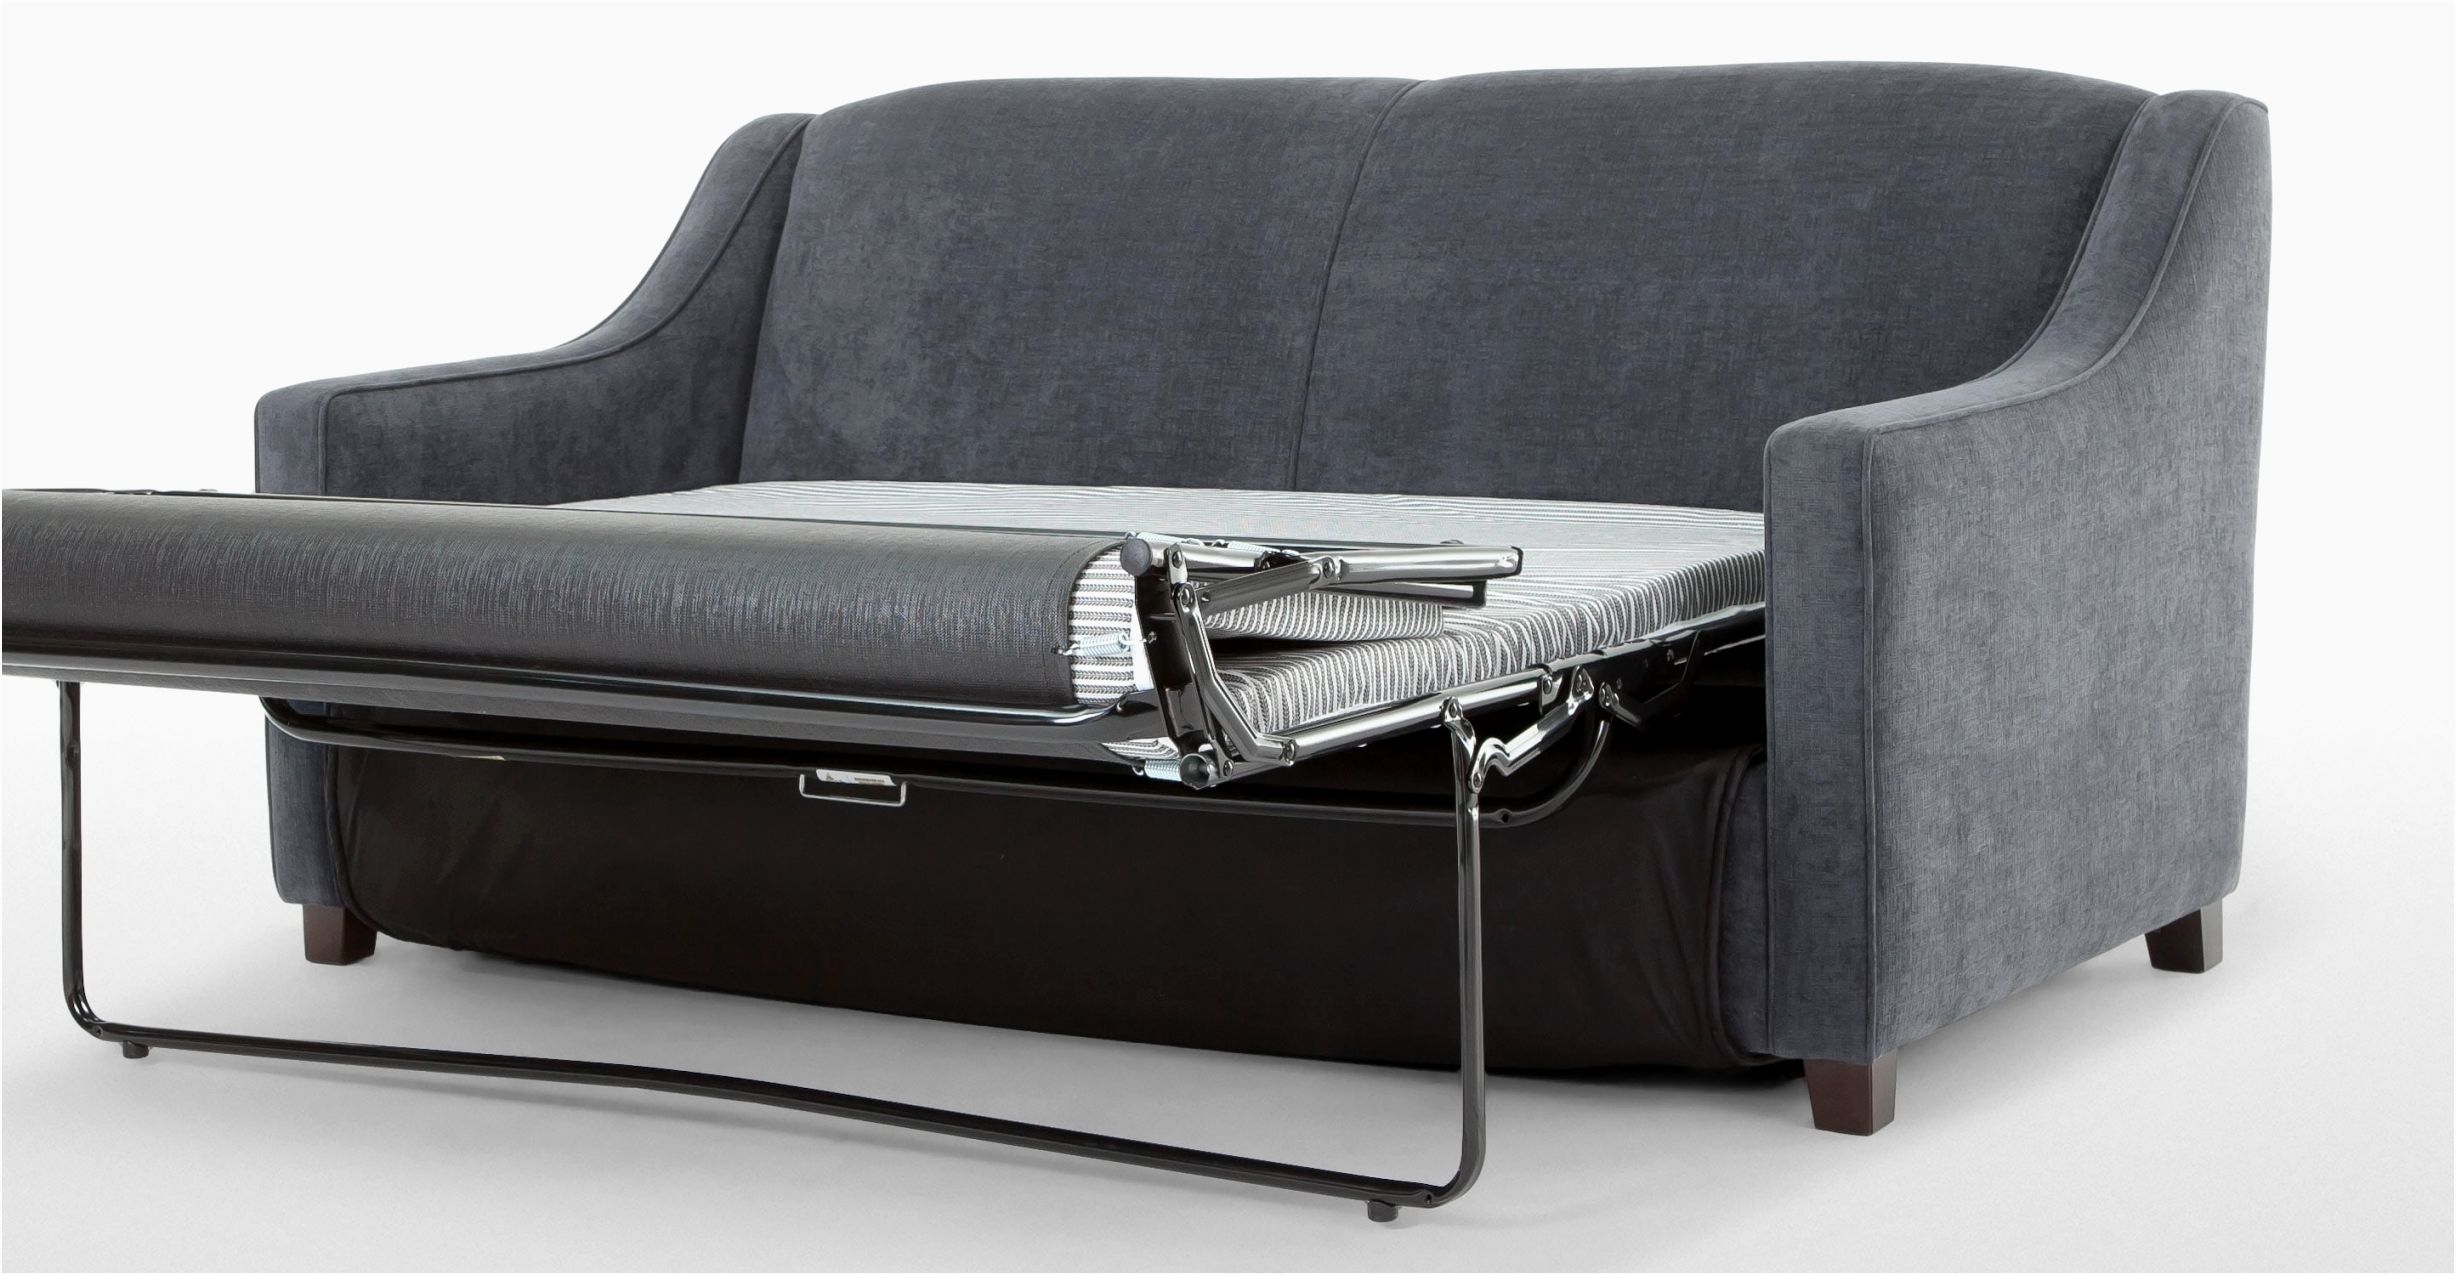 cool bobs furniture sofa bed photograph-Elegant Bobs Furniture sofa Bed Photograph